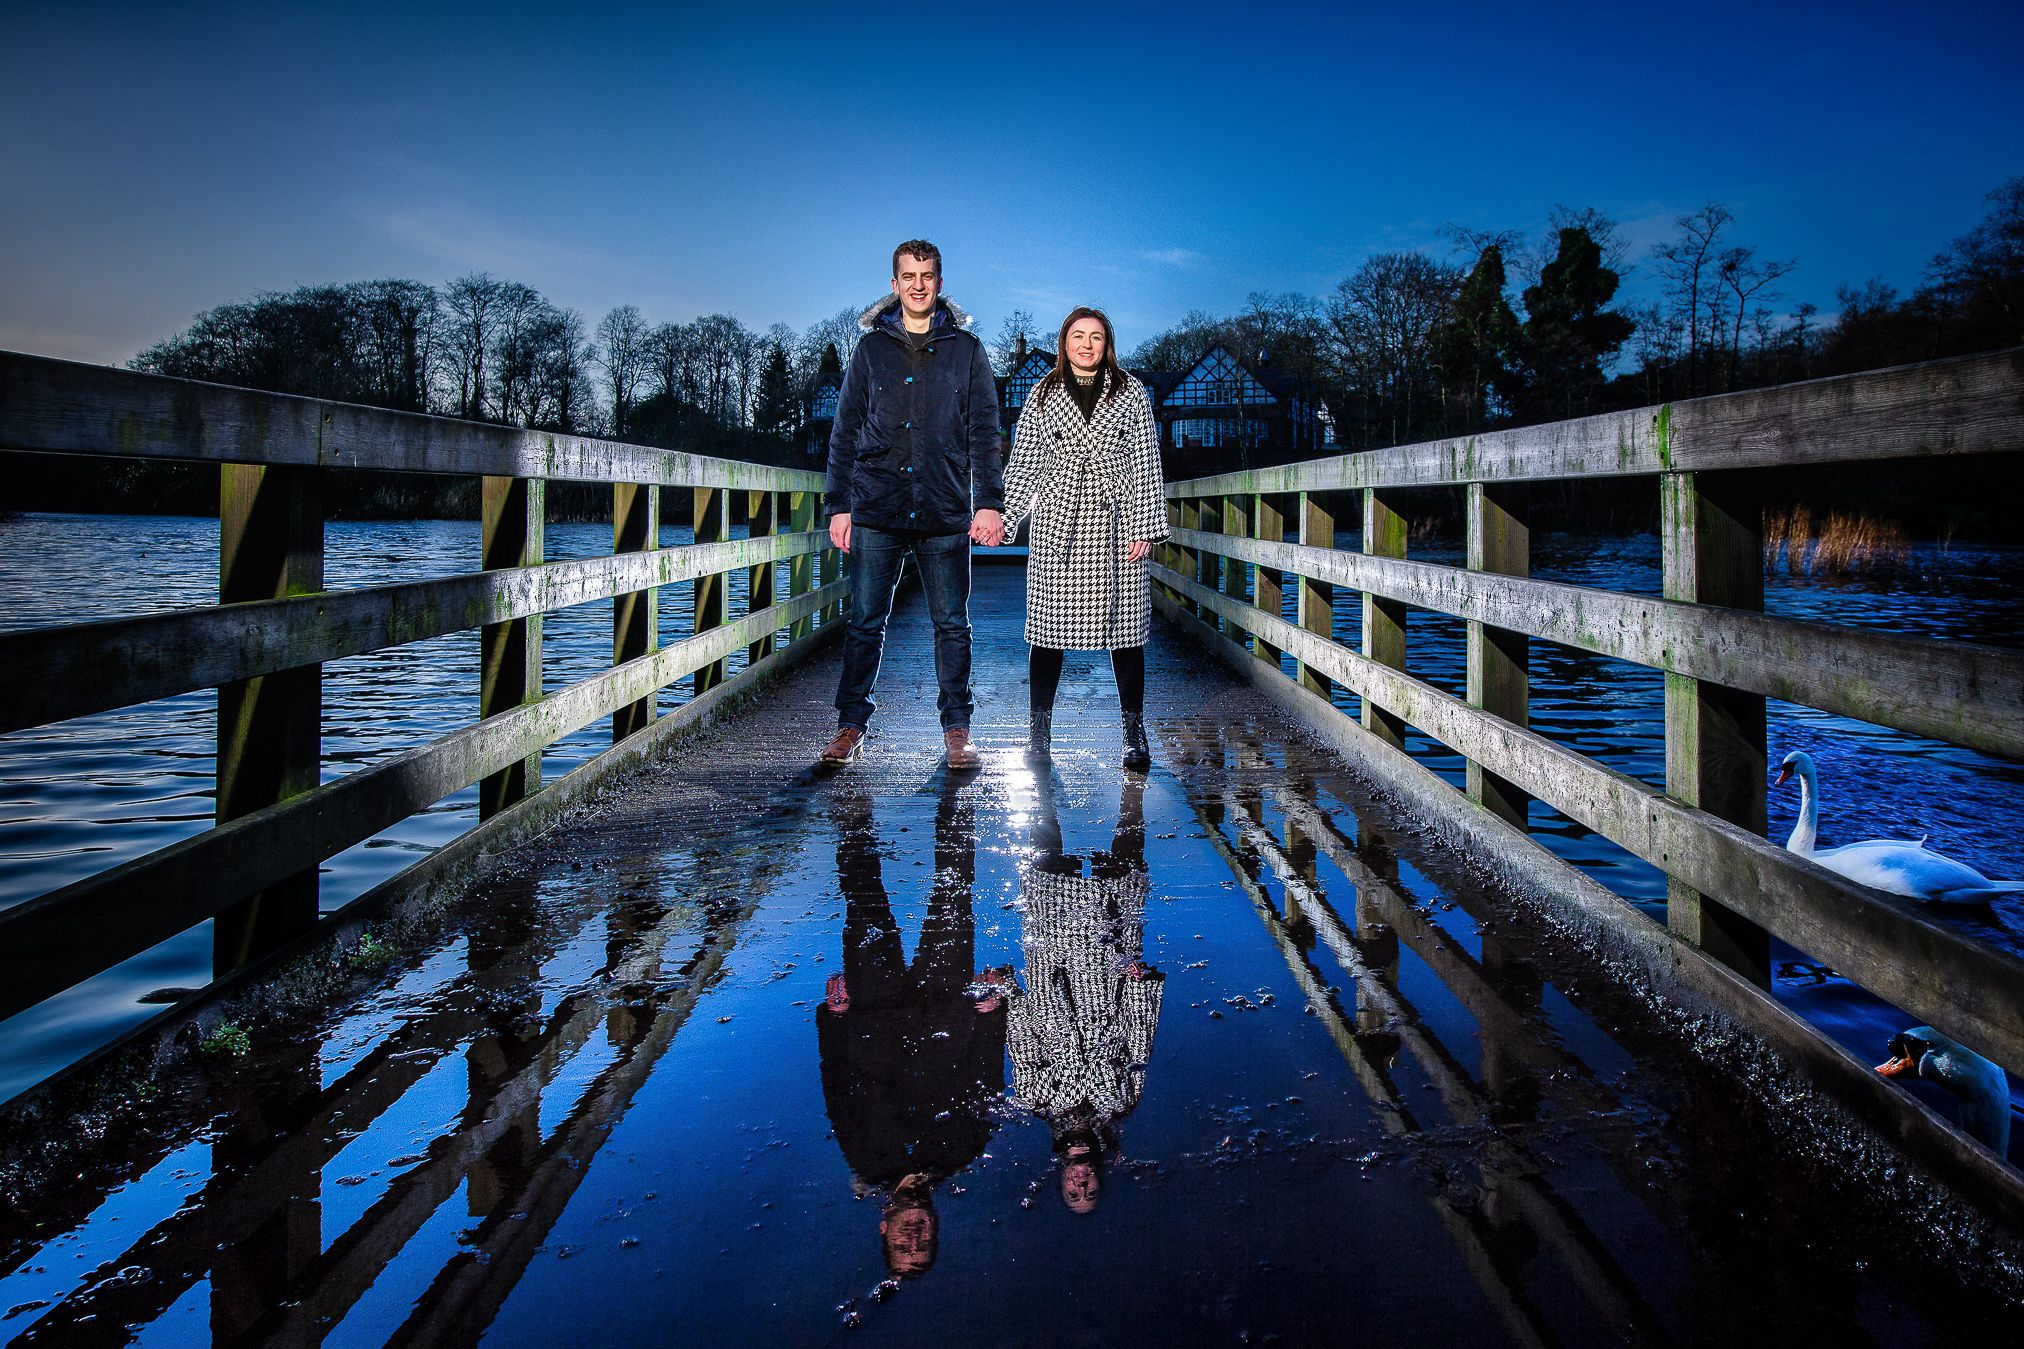 Egaged couple stand on a bridge over a lake reflected in a puddle and watched by swans in Worsely Manchester